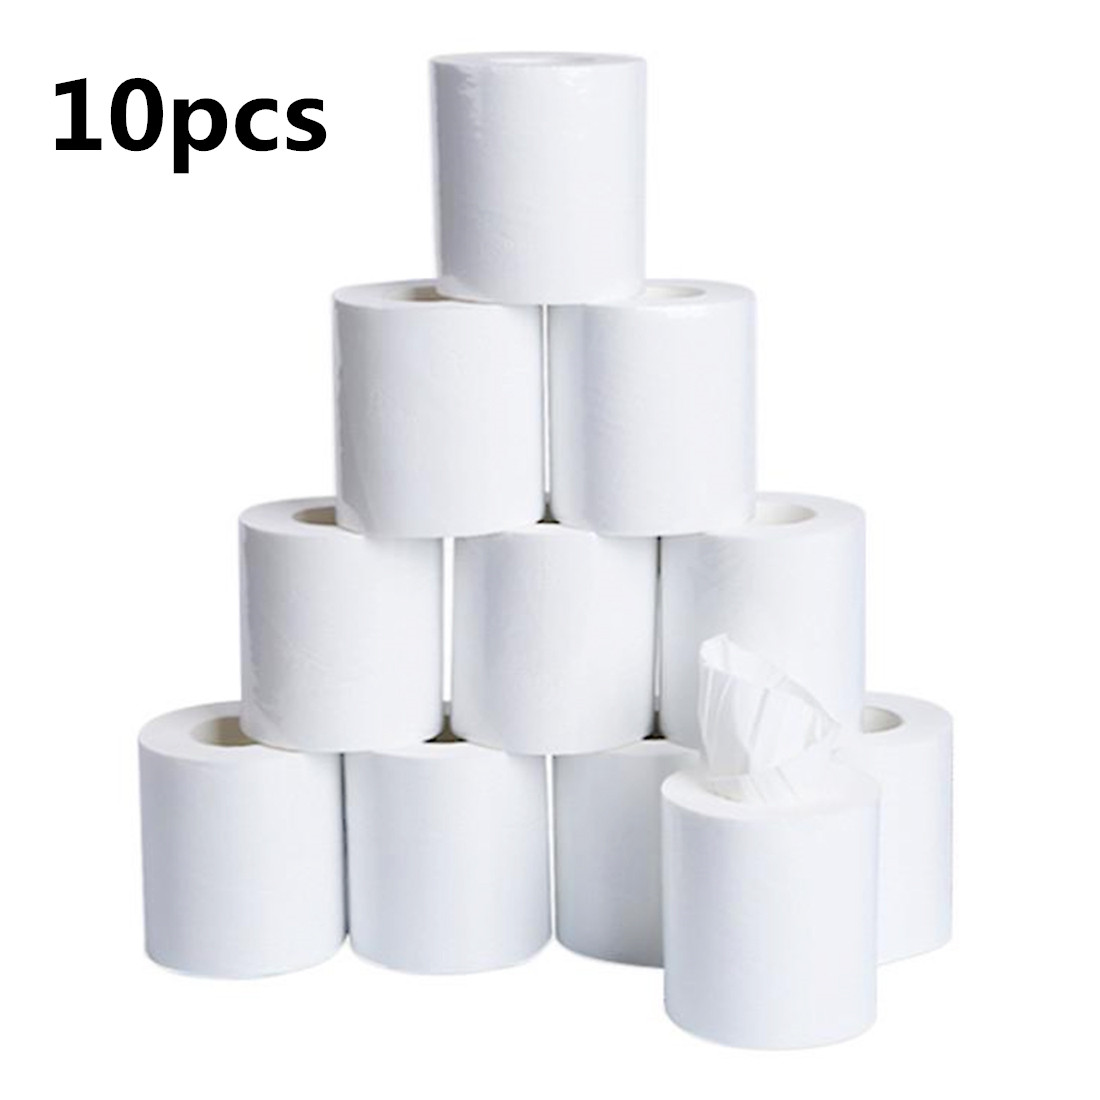 10pcs/bag 3ply White Toilet Tissue Prevent Flu Cleaning Toilet Tissue Clean Soft Toilet Paper Hollow Replacement Roll Paper Z1